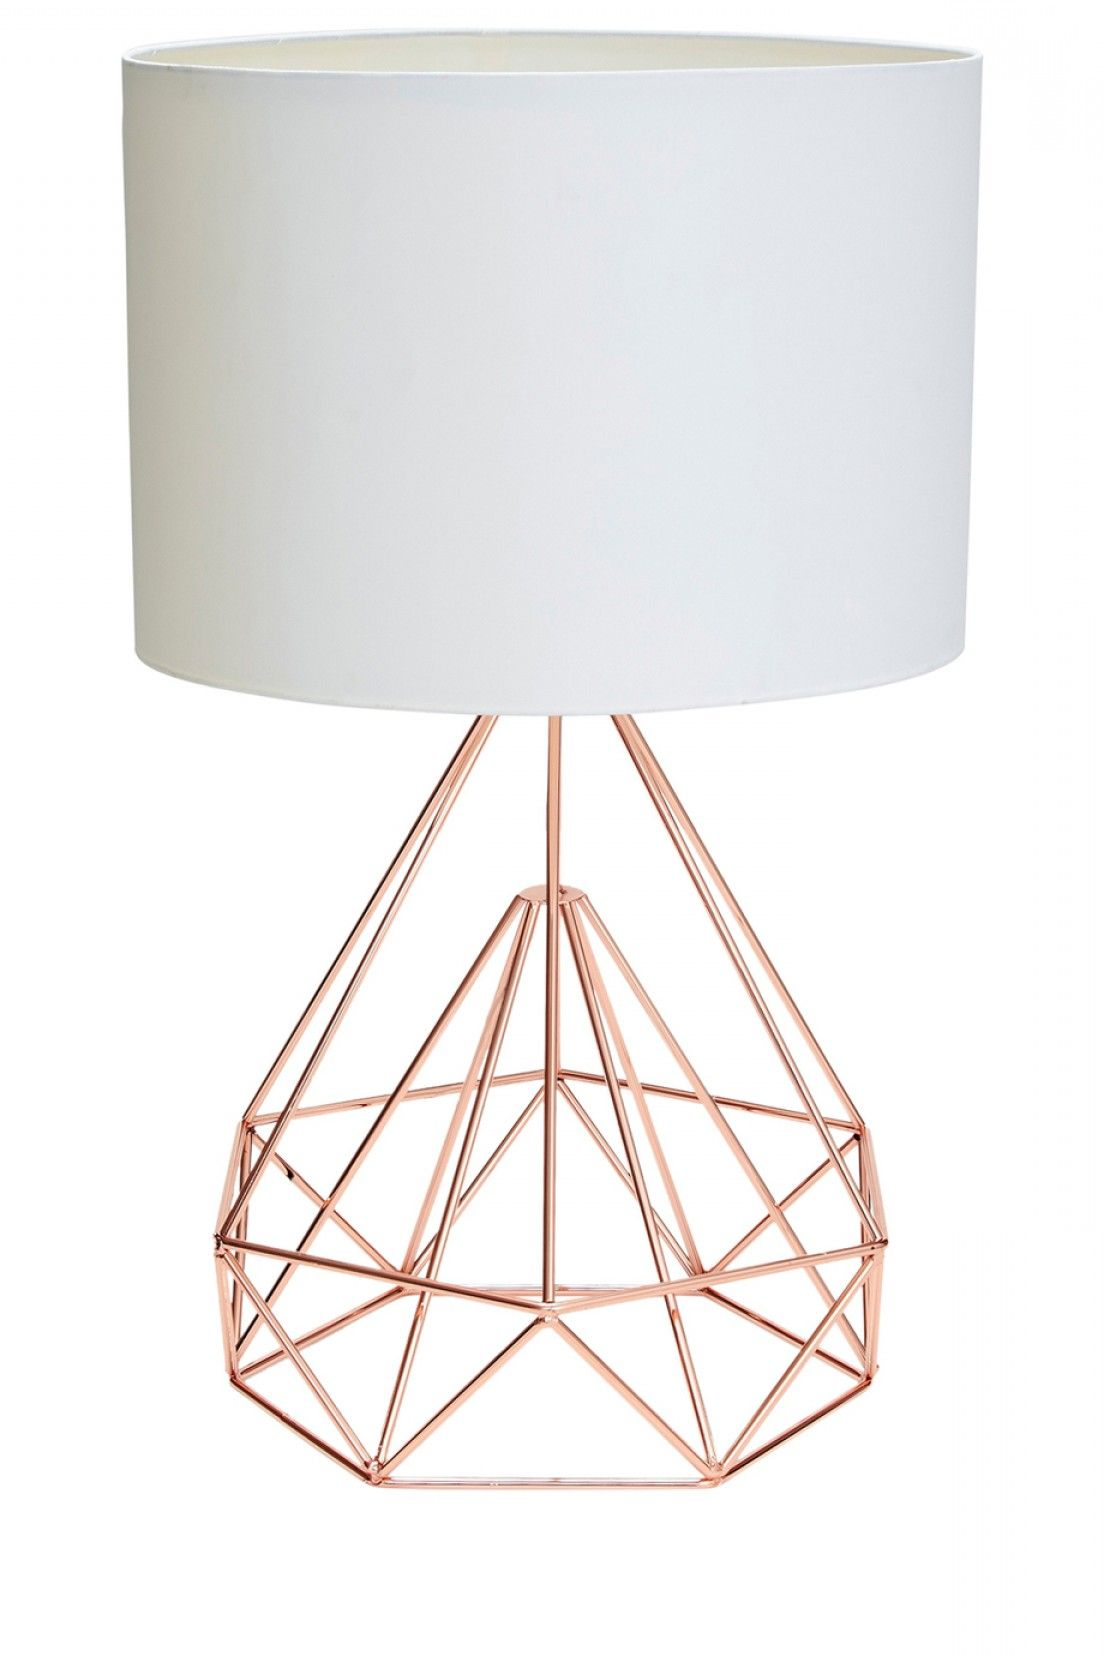 Salt and pepper chicago rose gold wire table lamp with white shade salt and pepper chicago rose gold wire table lamp with white shade greentooth